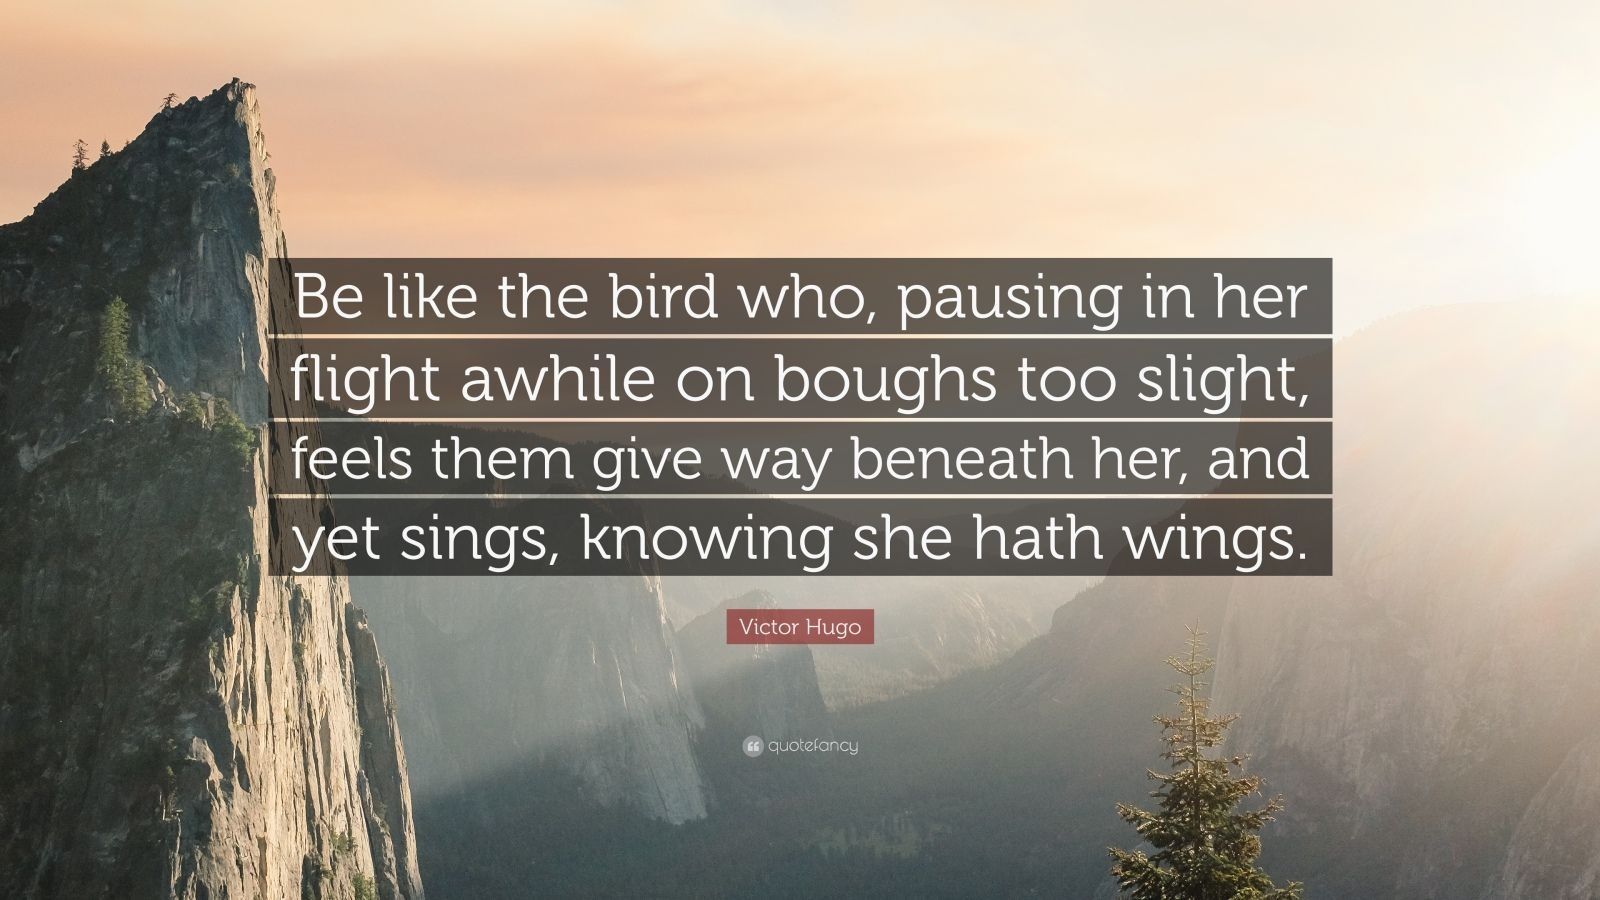 """Victor Hugo Quote: """"Be like the bird who, pausing in her flight awhile on boughs too slight, feels them give way beneath her, and yet sings, knowing she hath wings."""""""